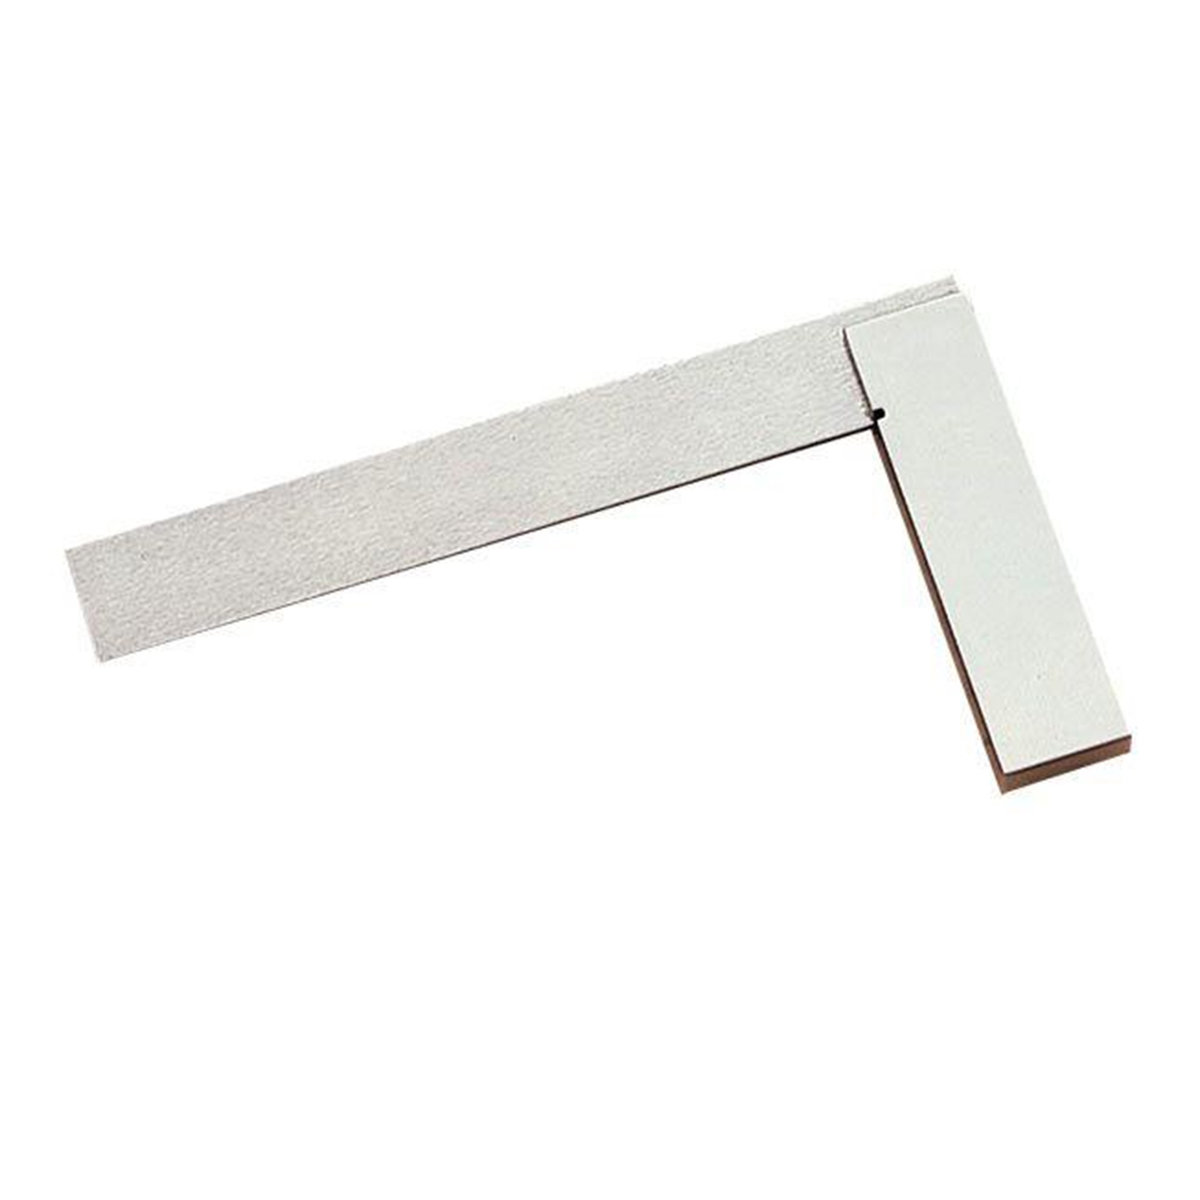 "Groz - 6"" Stainless Steel Engineer's Square"